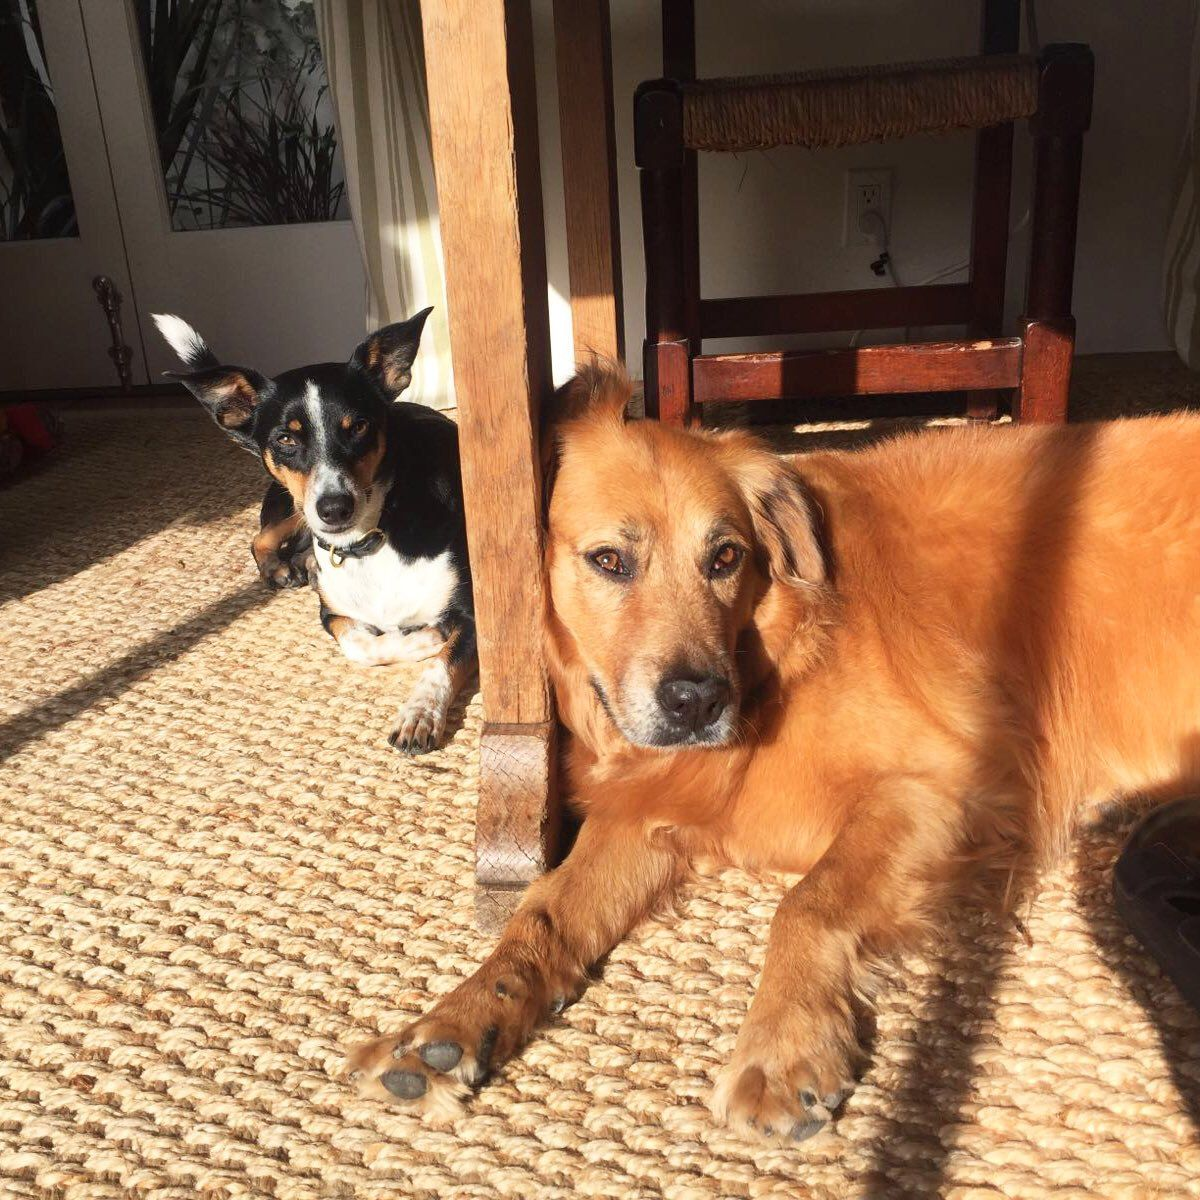 Hilary Swank's two rescue dogs, Kai and Rumi, lie in the sunshine